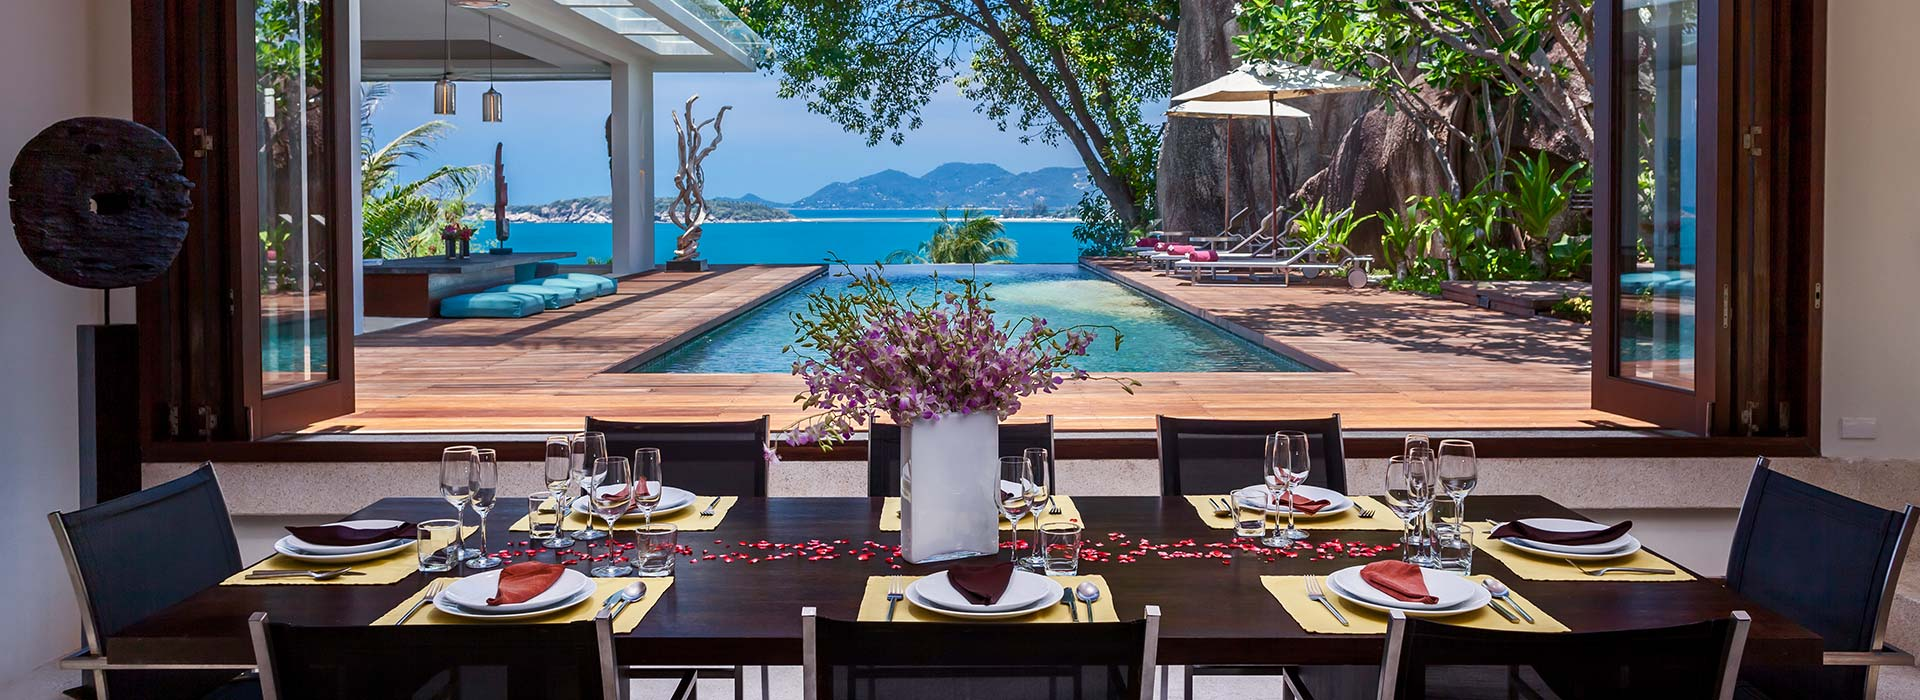 Villa Hin Koh Samui<br>with private pool